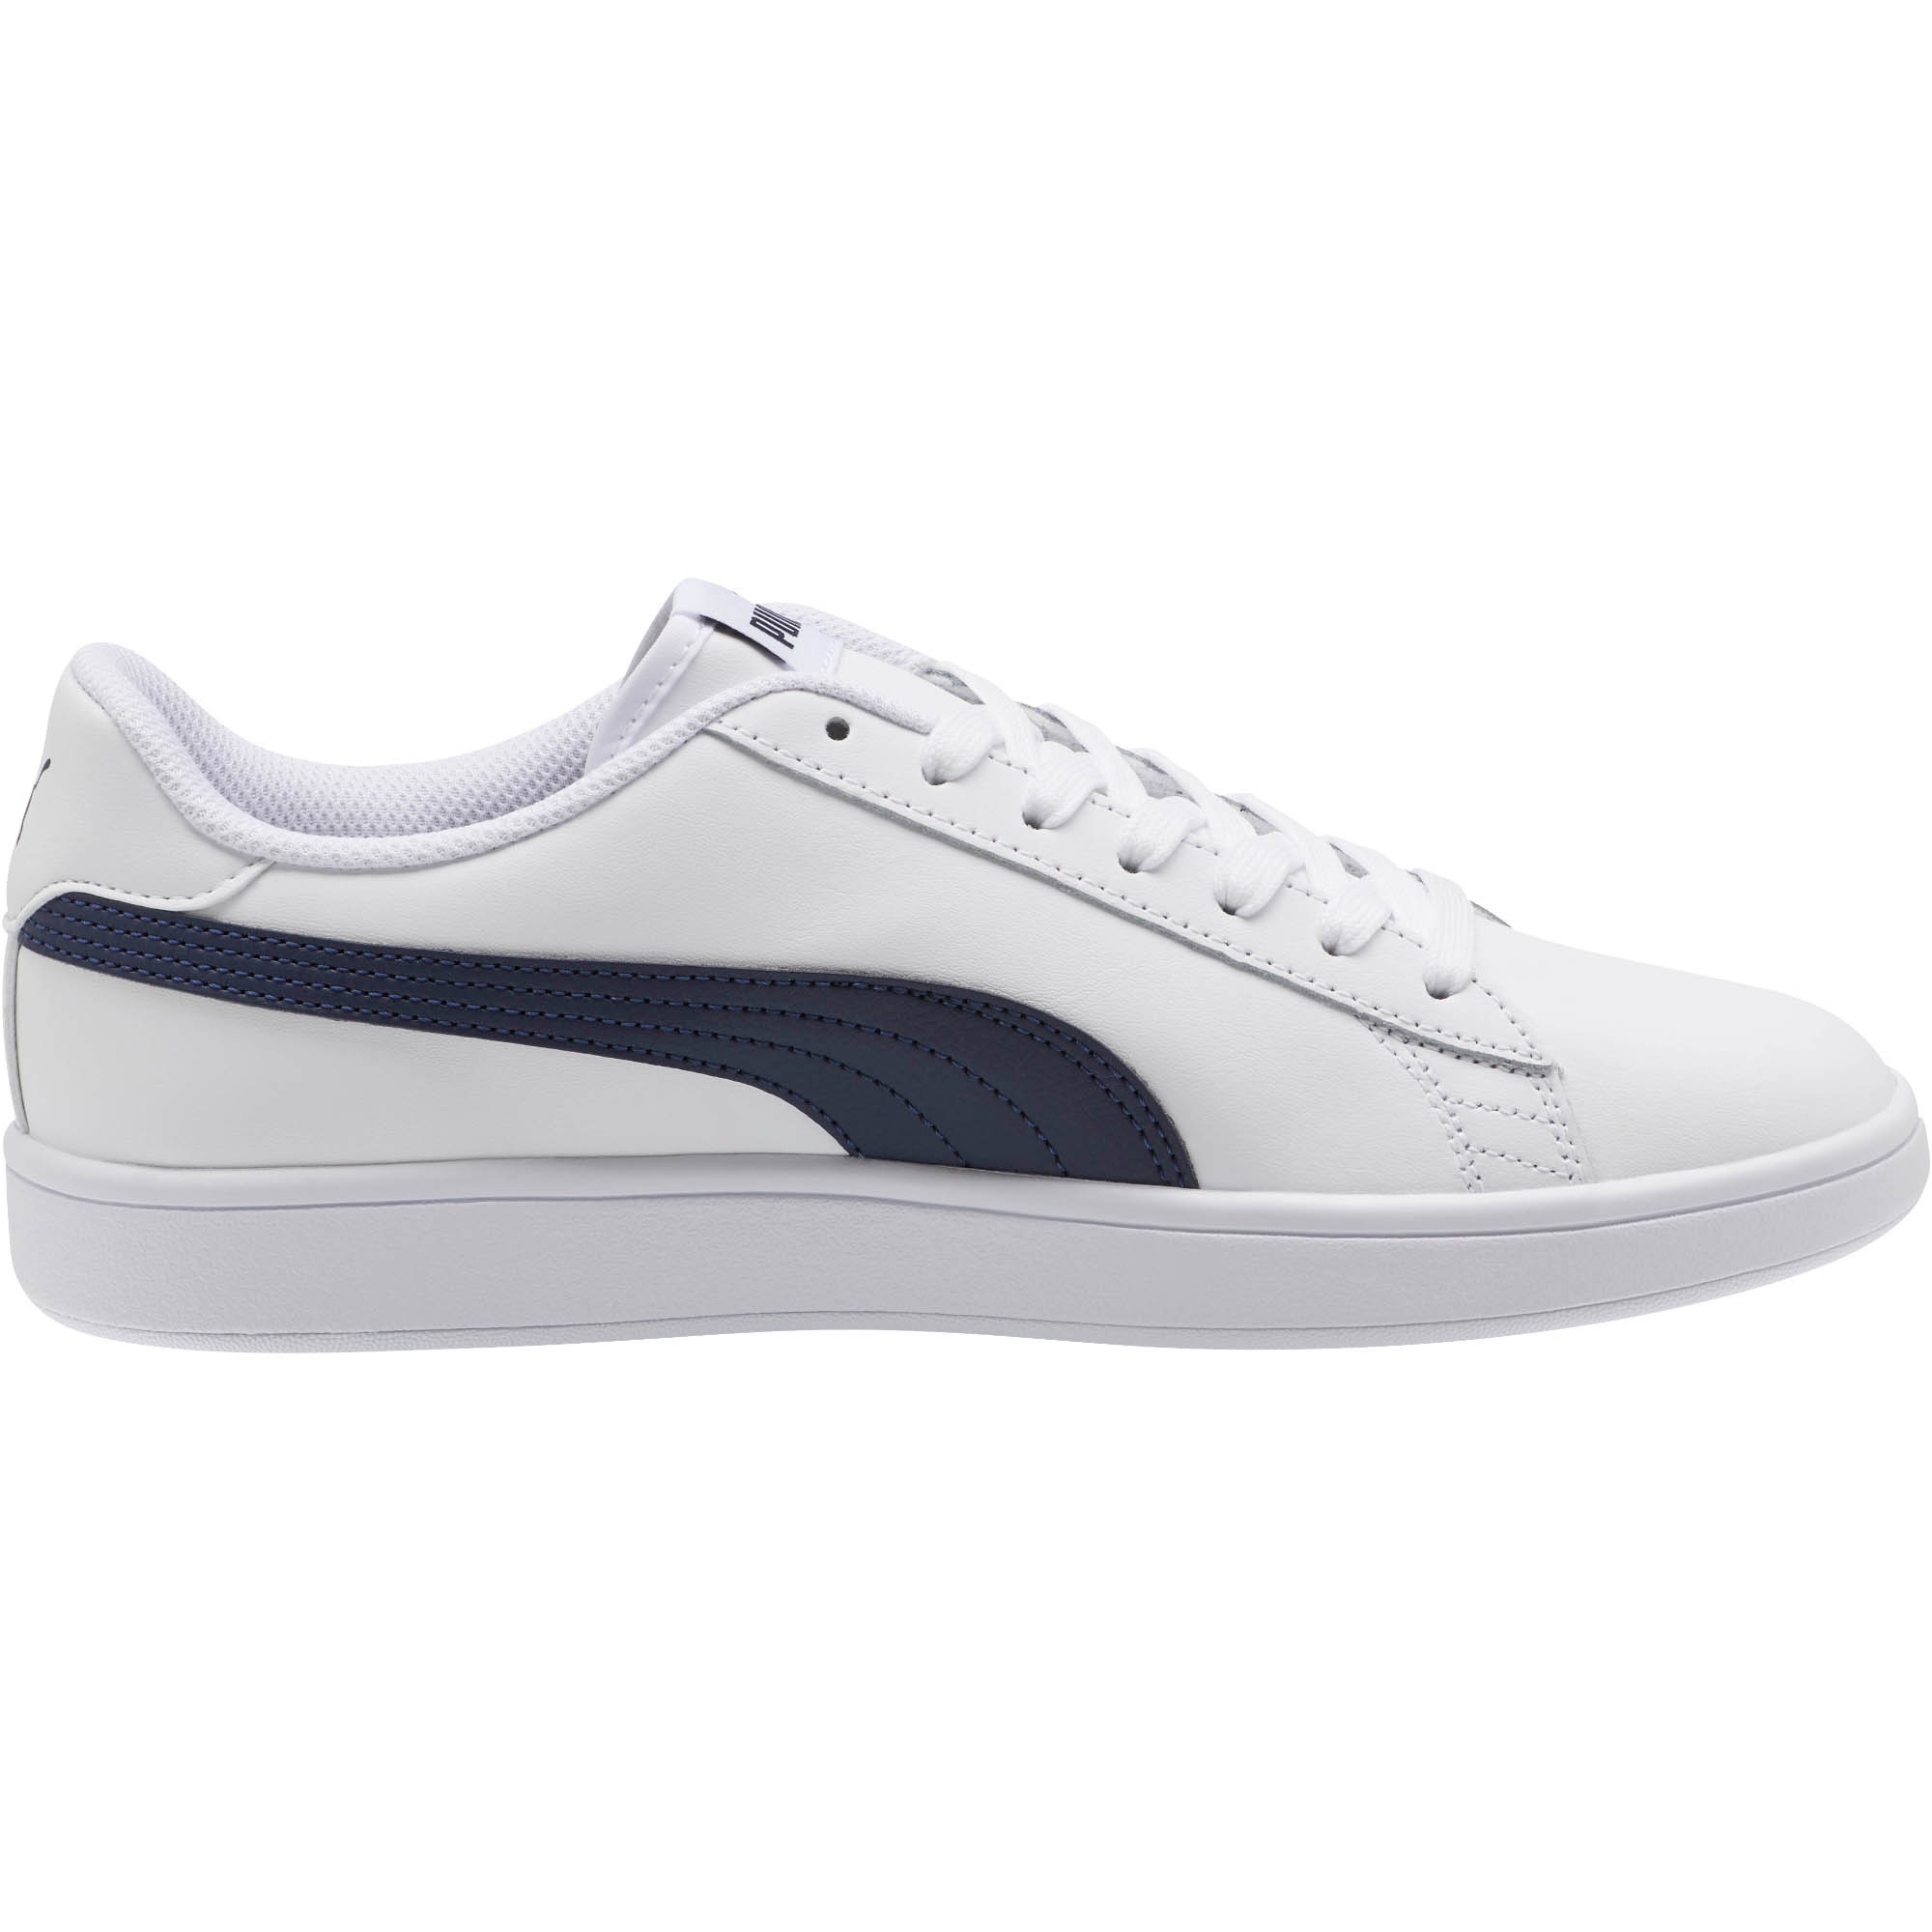 PUMA-PUMA-Smash-v2-Men-039-s-Sneakers-Men-Shoe-Basics miniatura 15